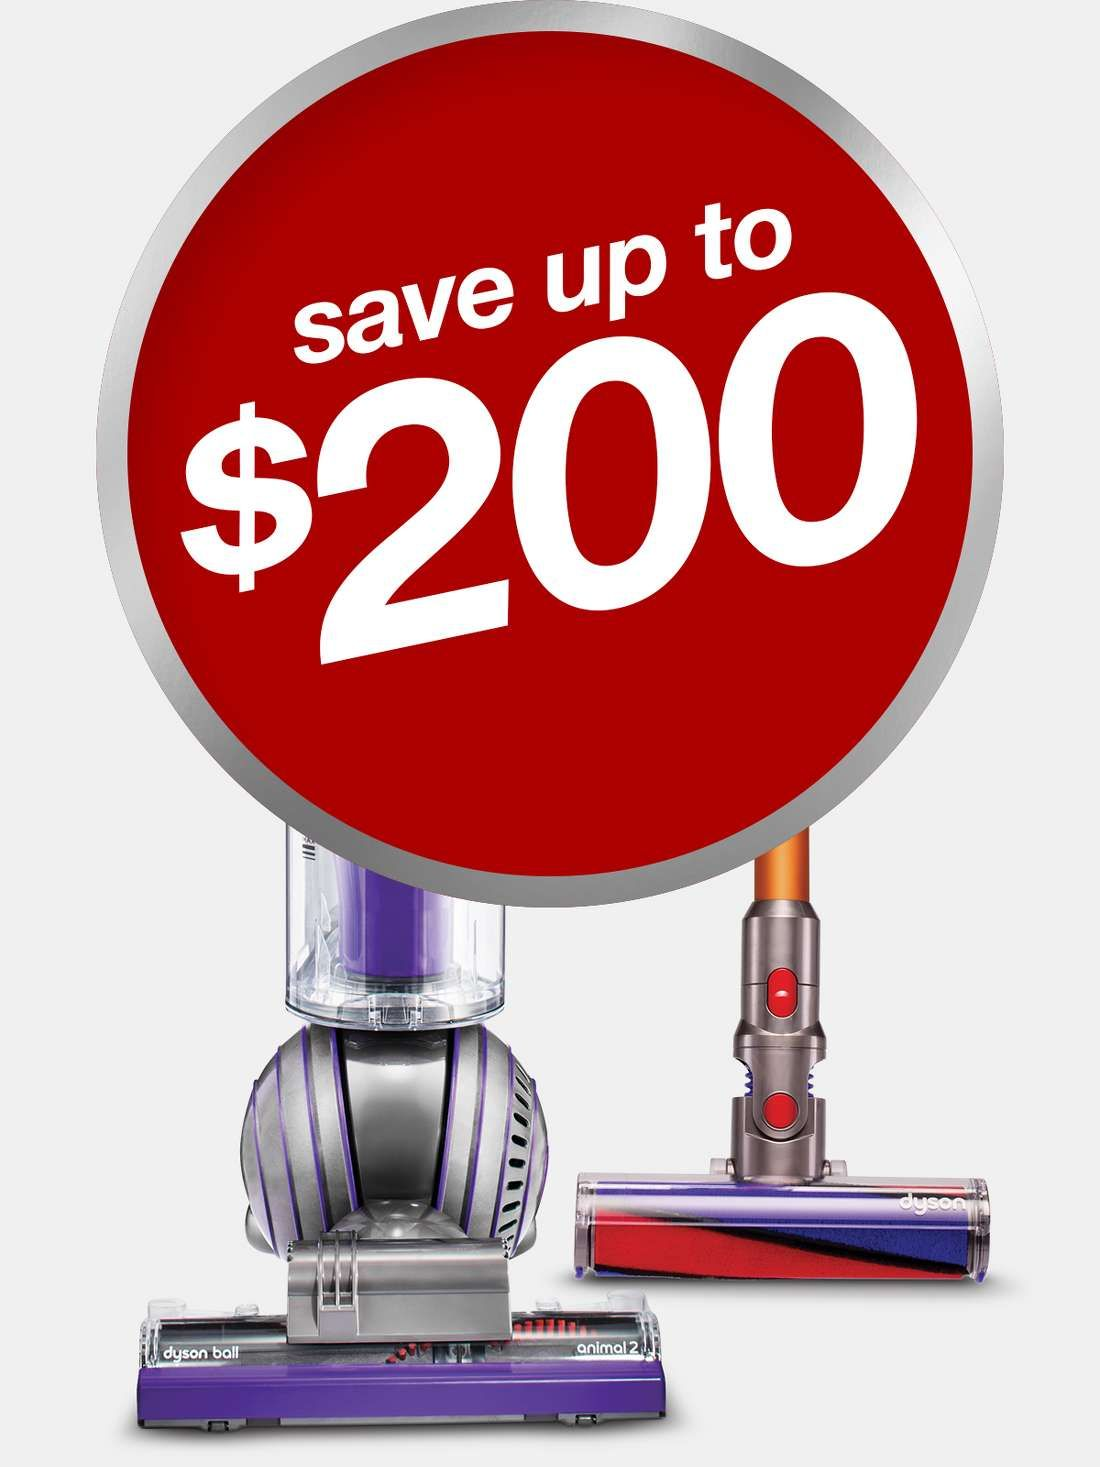 Shop Target For Great Cyber Monday Deals Free Shipping And Returns Plus Free Same Day Pick Up In Store Target Cyber Monday Cyber Monday Deals Shop Target